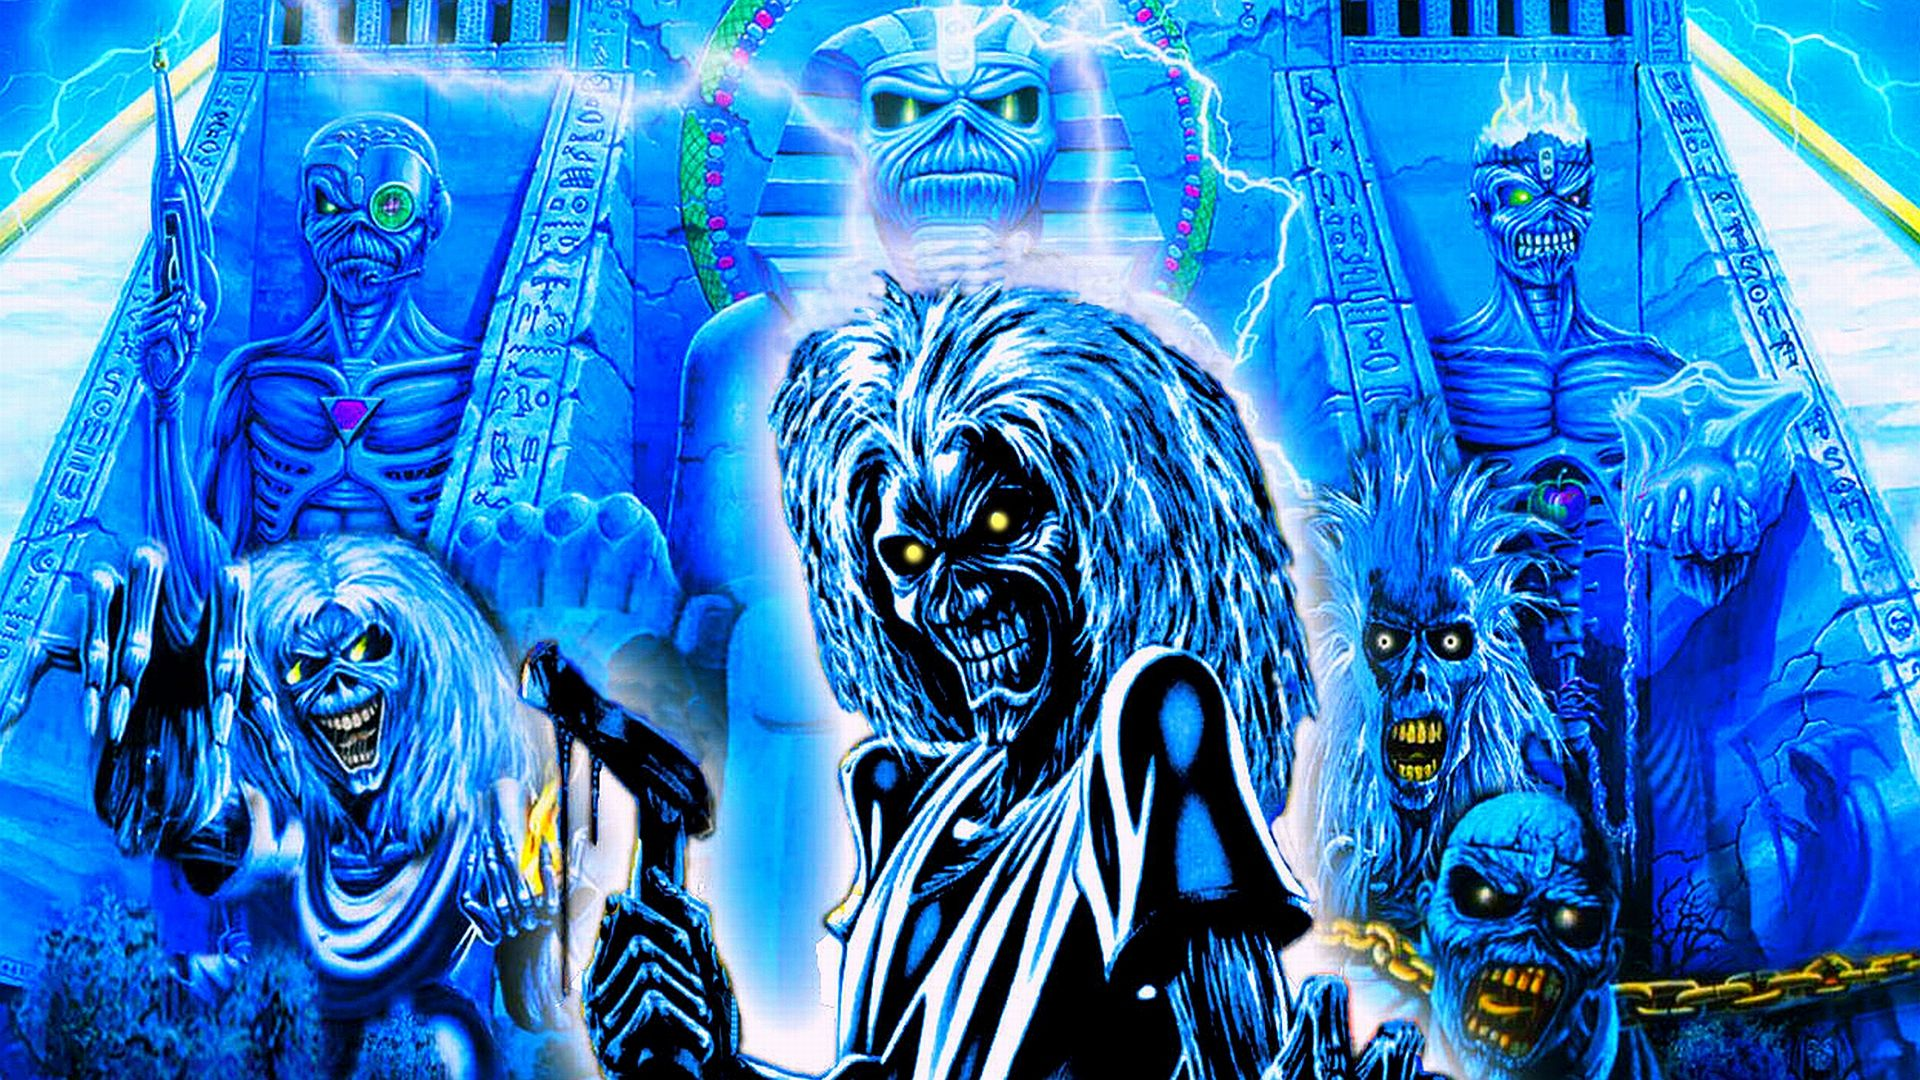 View, download, comment, and rate this 1920x1080 Iron Maiden Wallpaper - Wallpaper Abyss